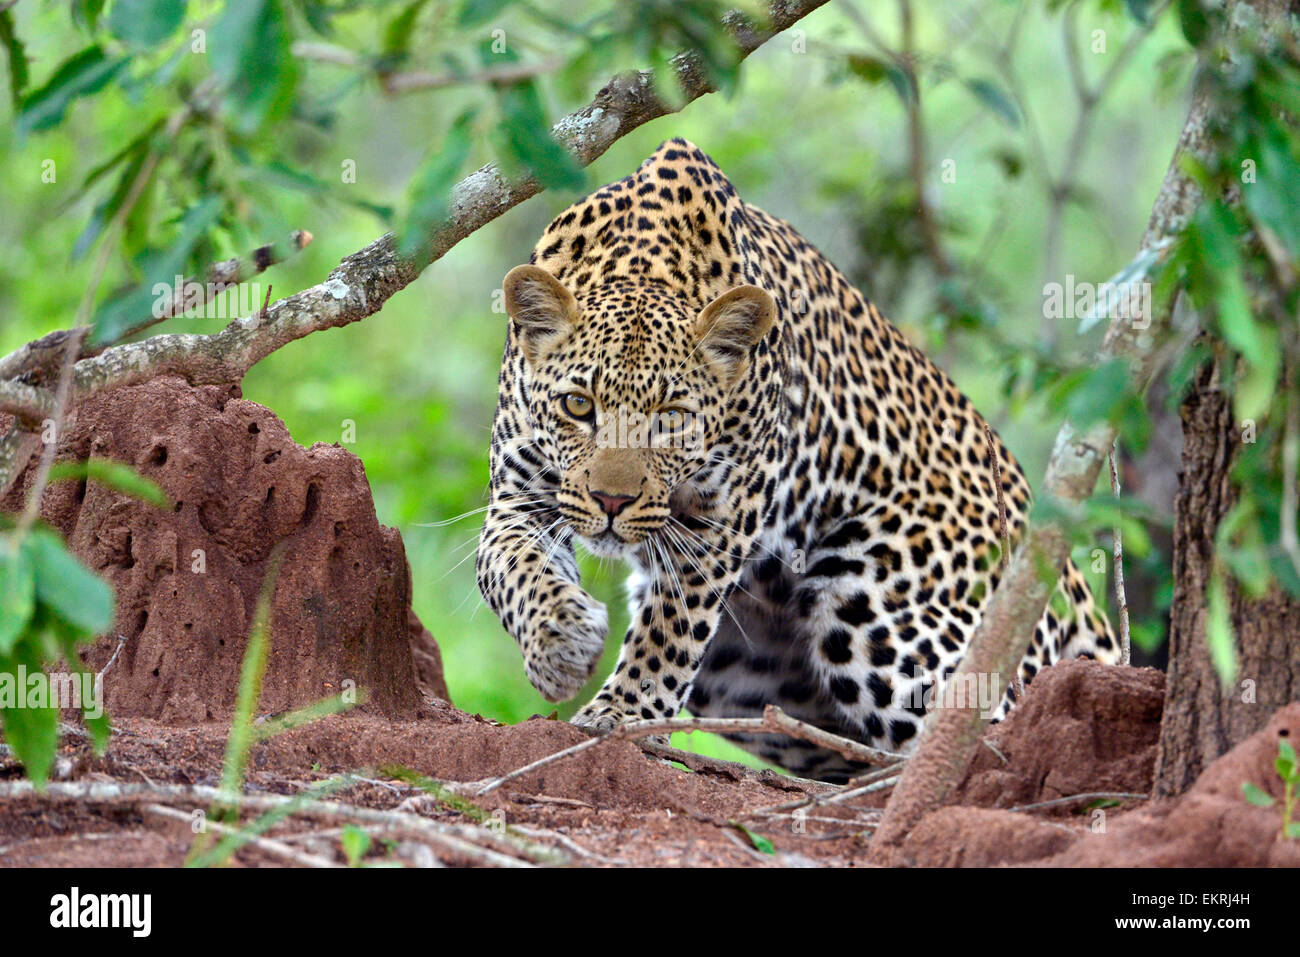 Stalking leopard in world famous Kruger National Park, Mpumalanga, South Africa. - Stock Image